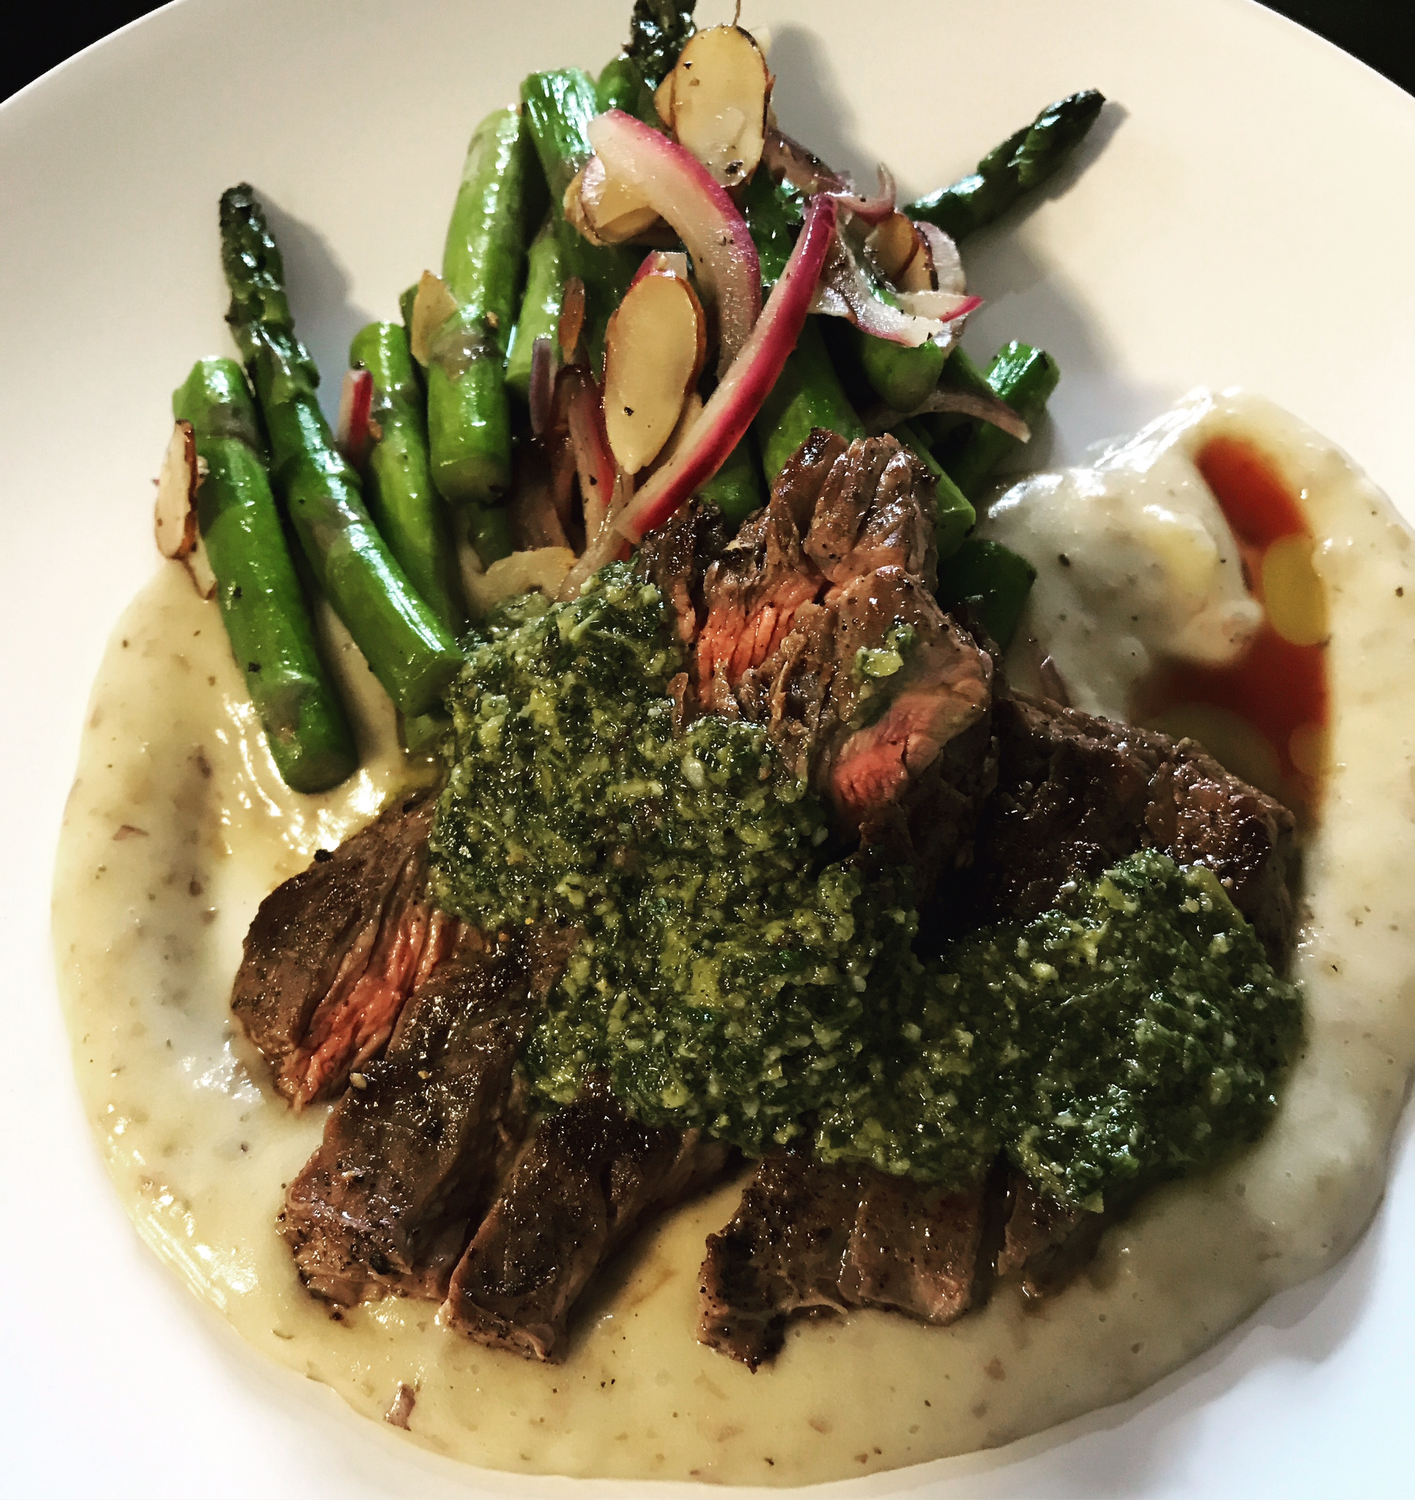 Steak chimichurri w/ cauliflower Puree